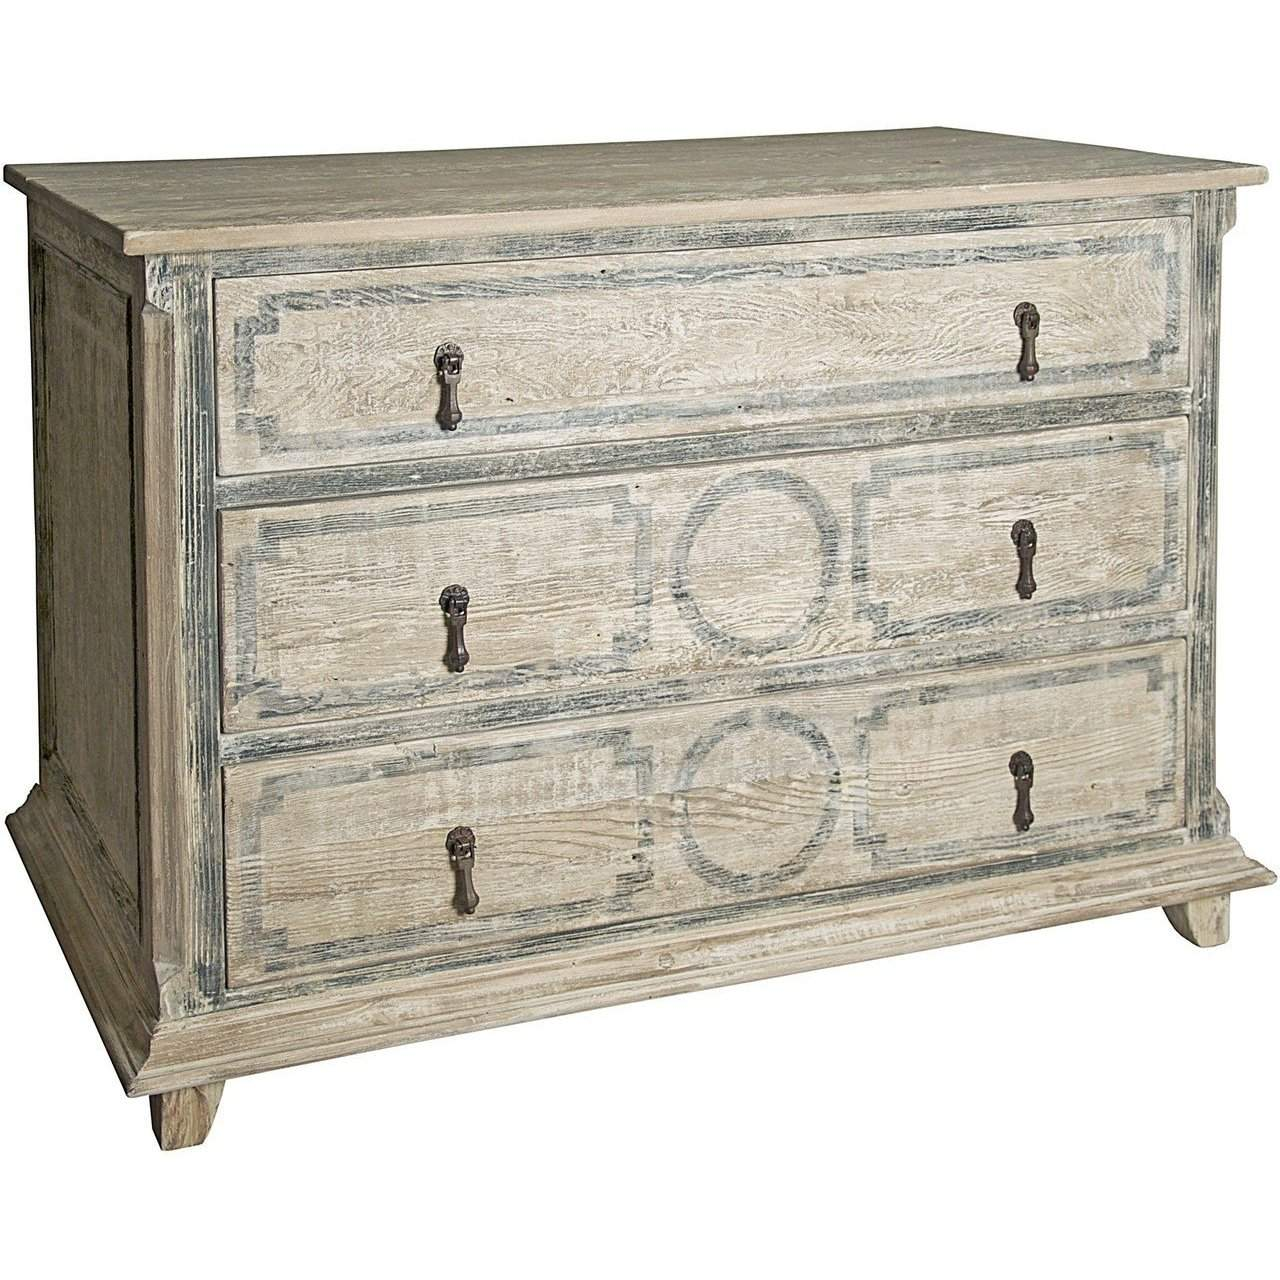 CFC Furniture Reclaimed Lumber Livingston 3-drw RL Dresser - Blue Hand Home